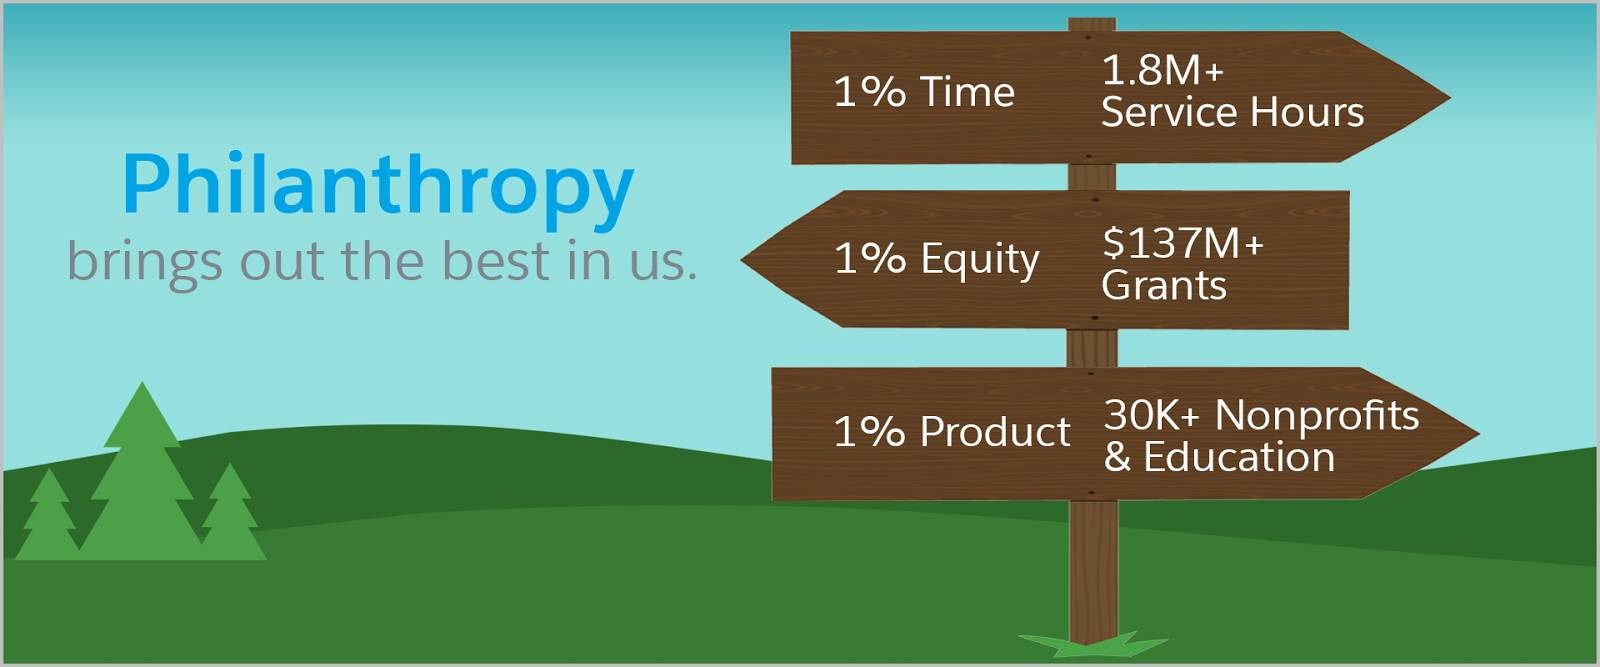 We believe philanthropy brings out the best in us. 1% of our time equals over 1.8 million service hours. 1% of our equity equals over $137 million in grants. 1% of our product means that over 30,000 nonprofits and education institutions have access to our tools.